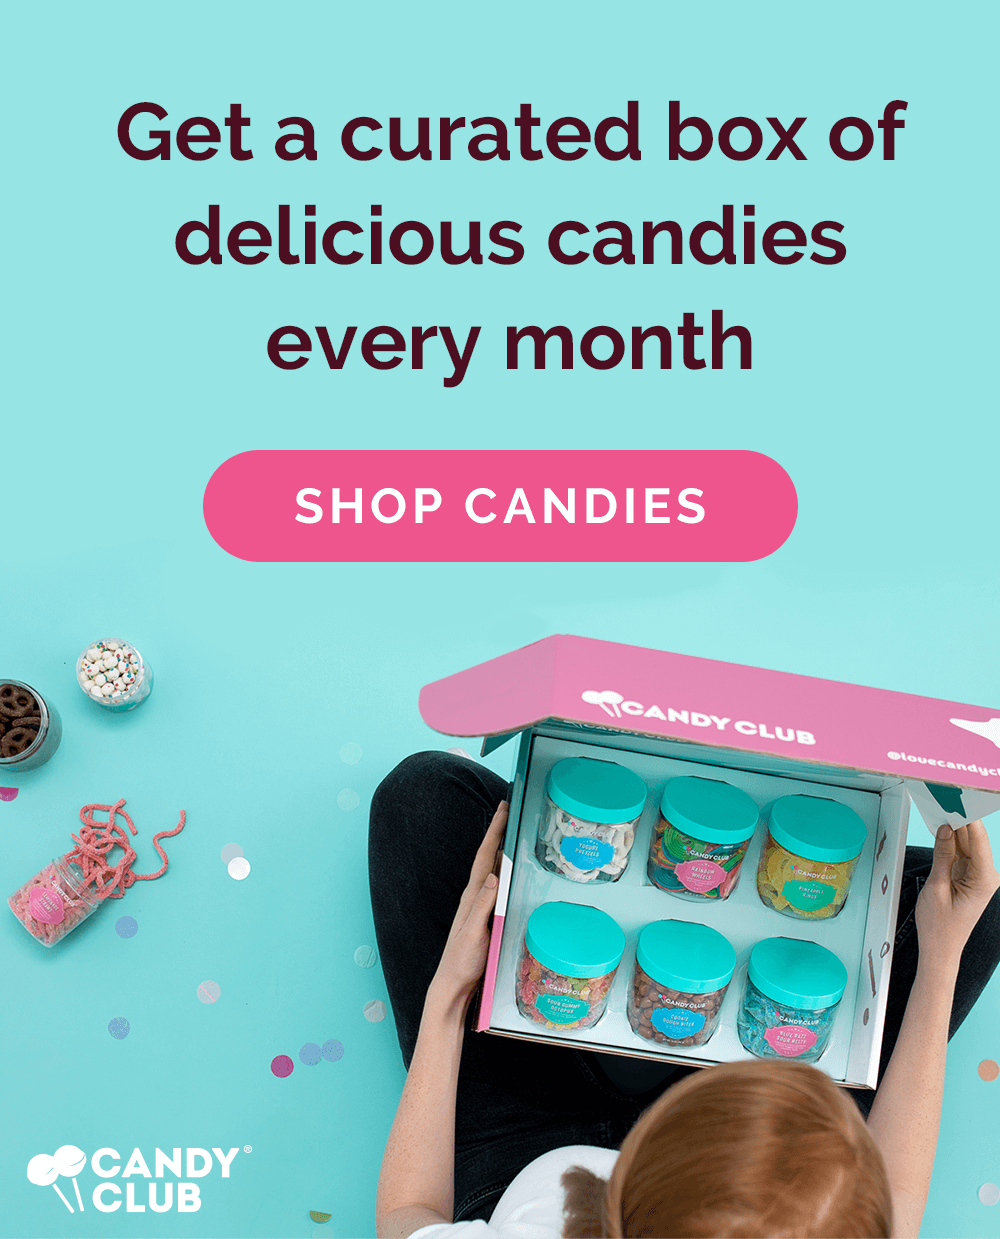 Get a curated box of delicious candies every month! Shop Candy Club